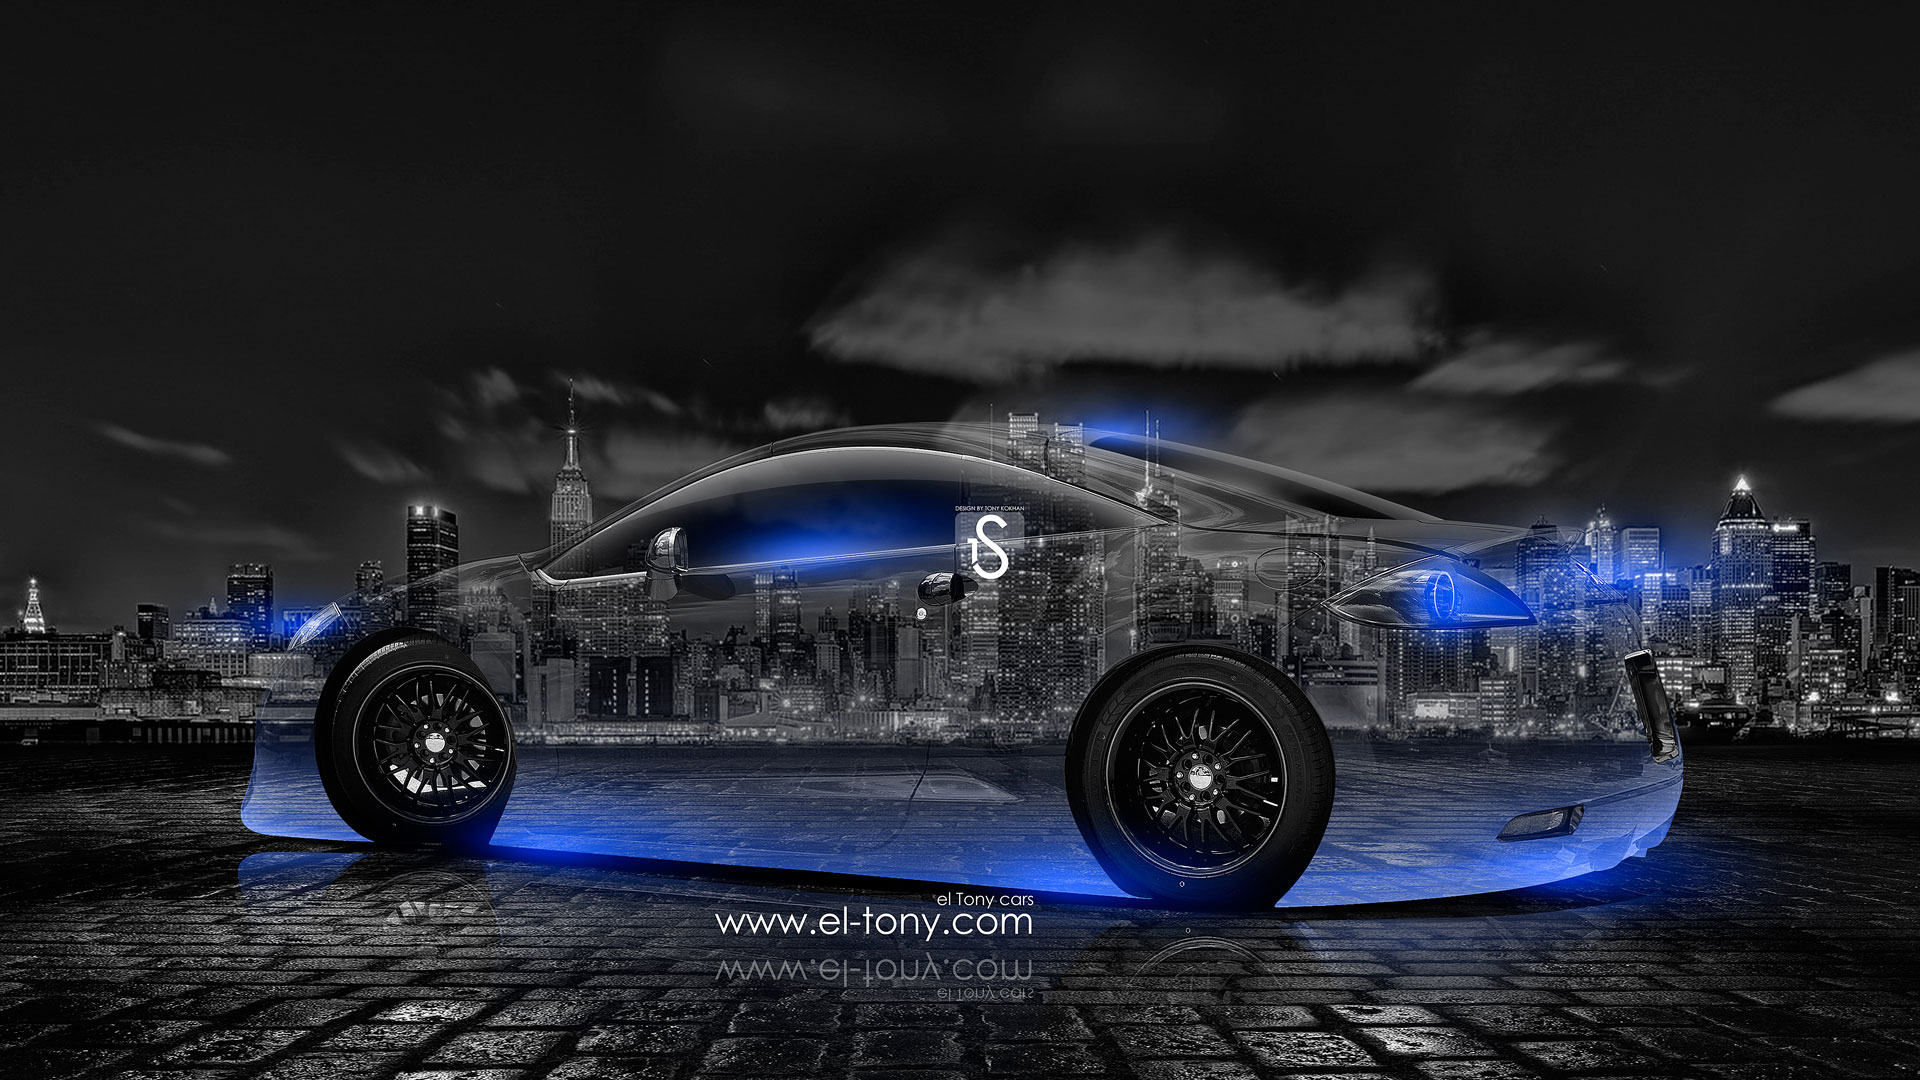 Merveilleux ... Mitsubishi Eclipse JDM Crystal City Car 2014 Blue  ...